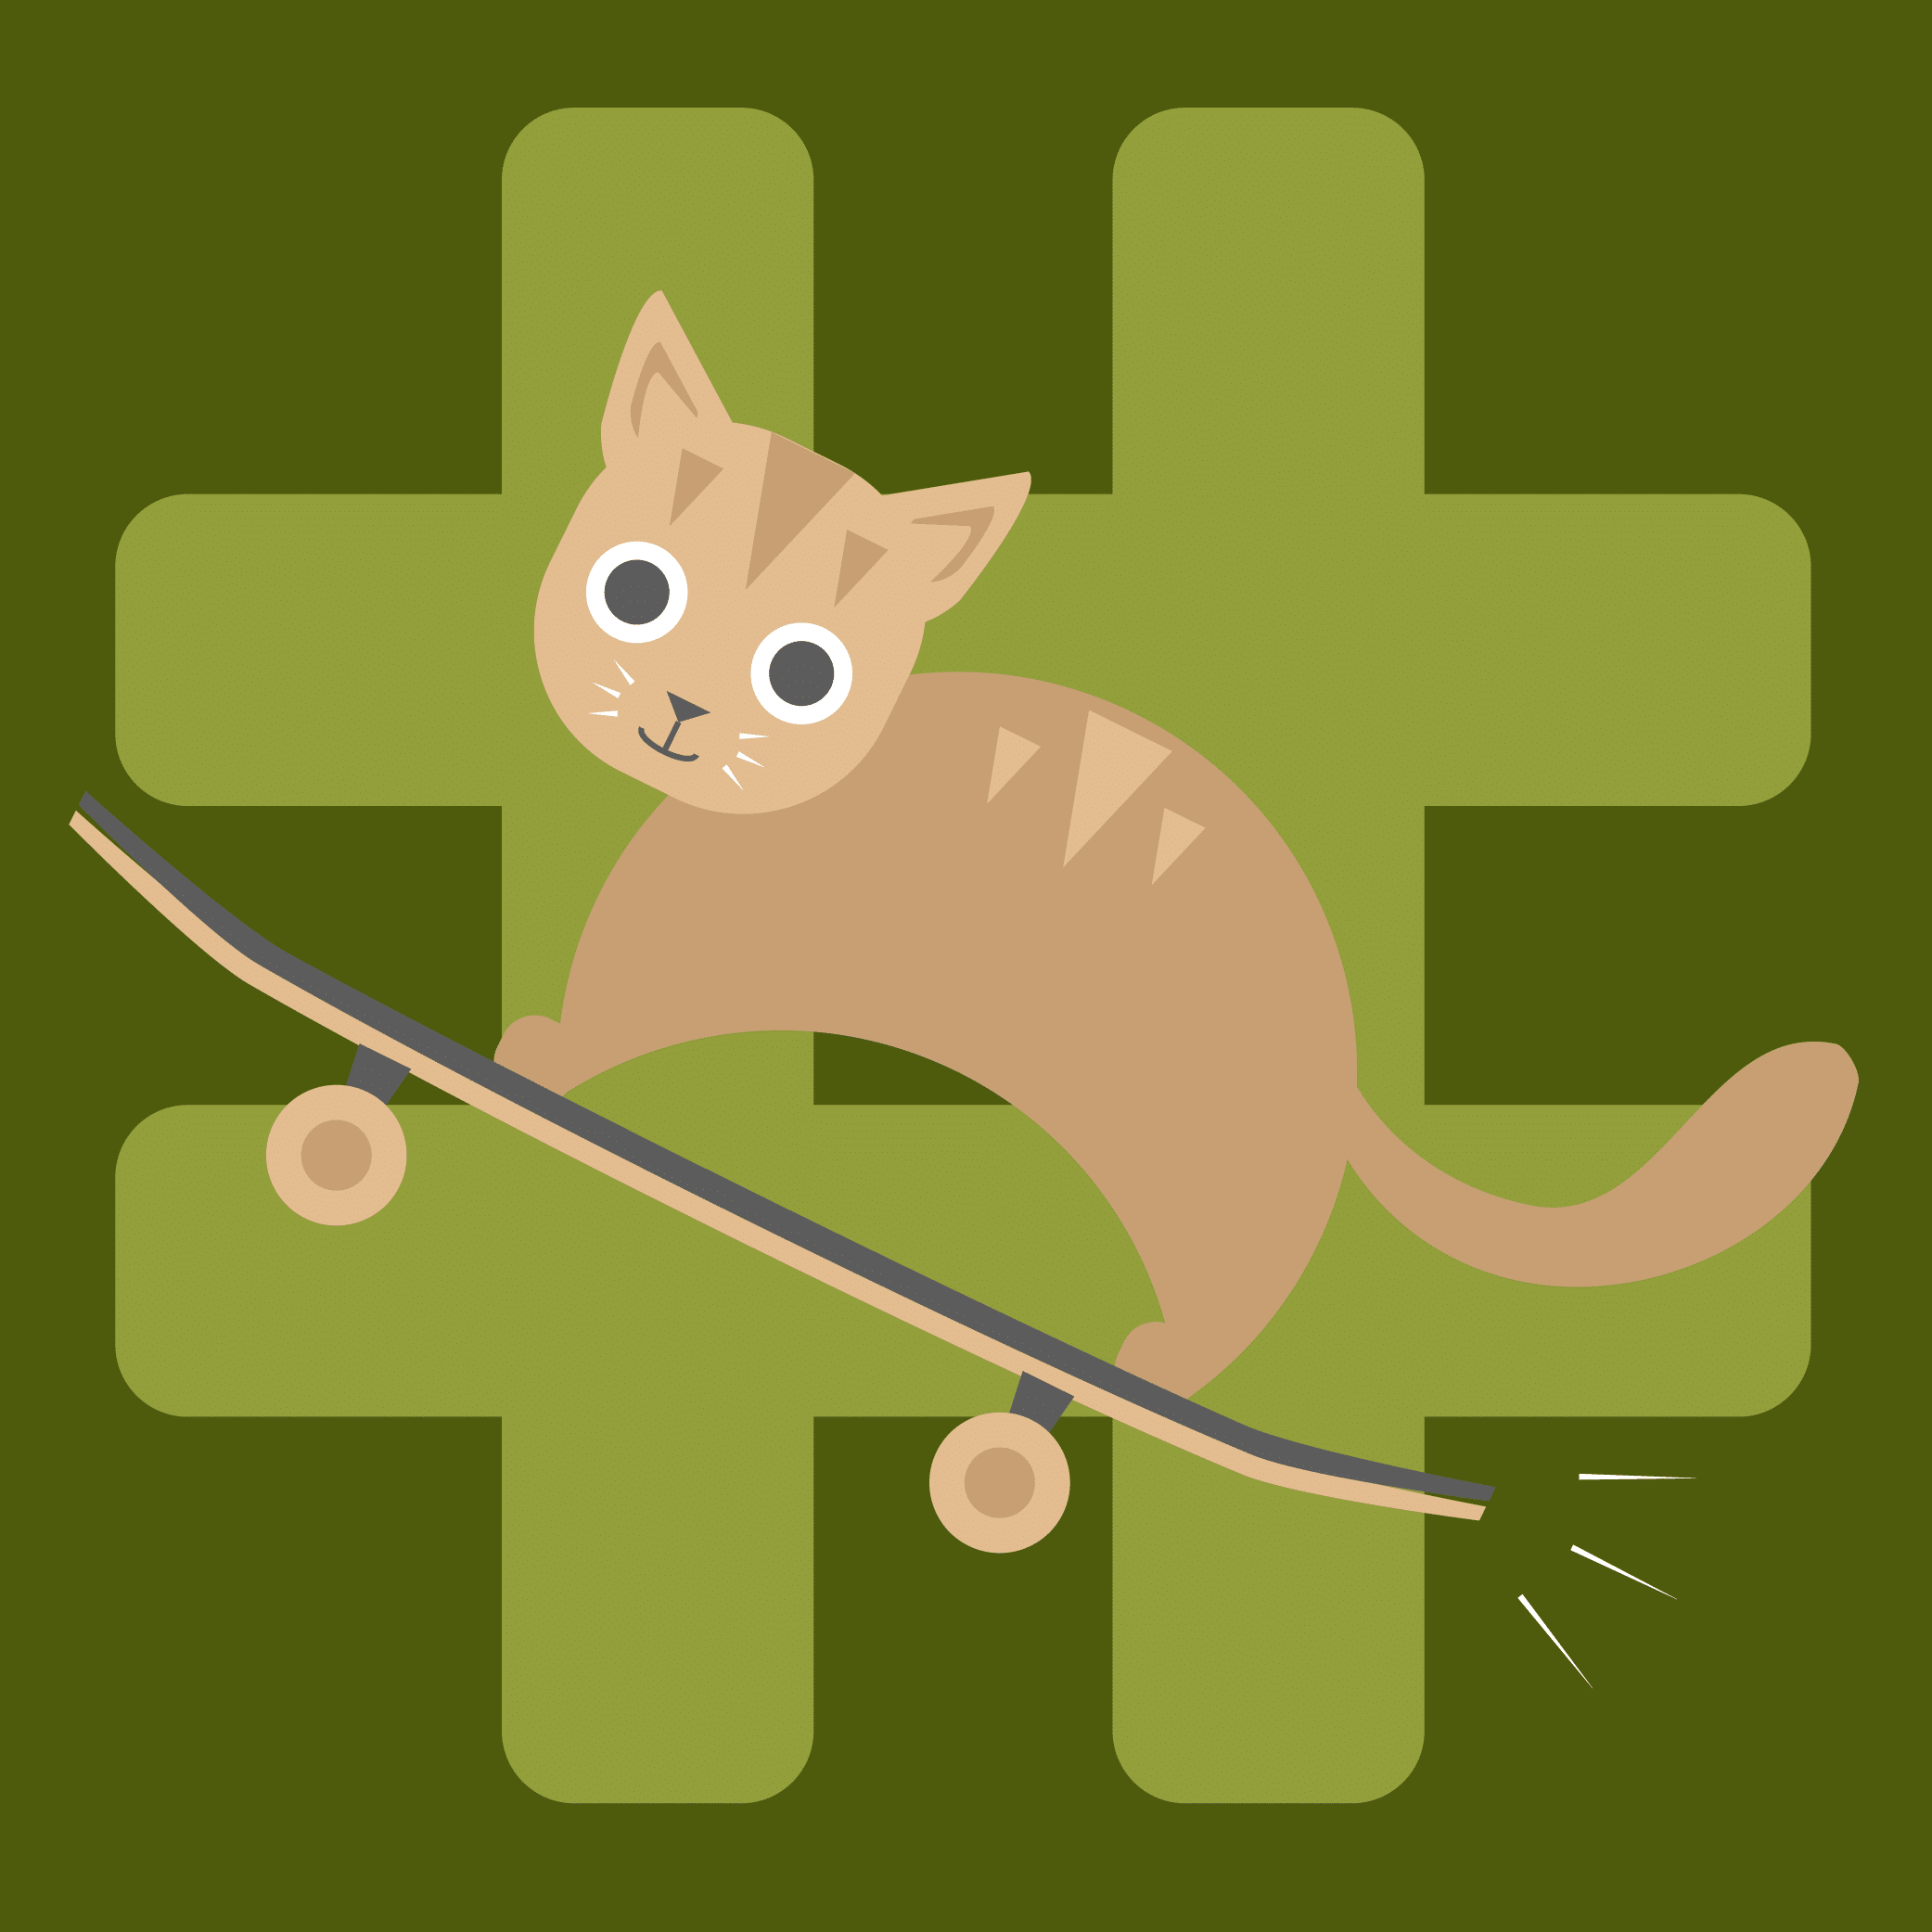 Illustration of a cat riding a skateboard.